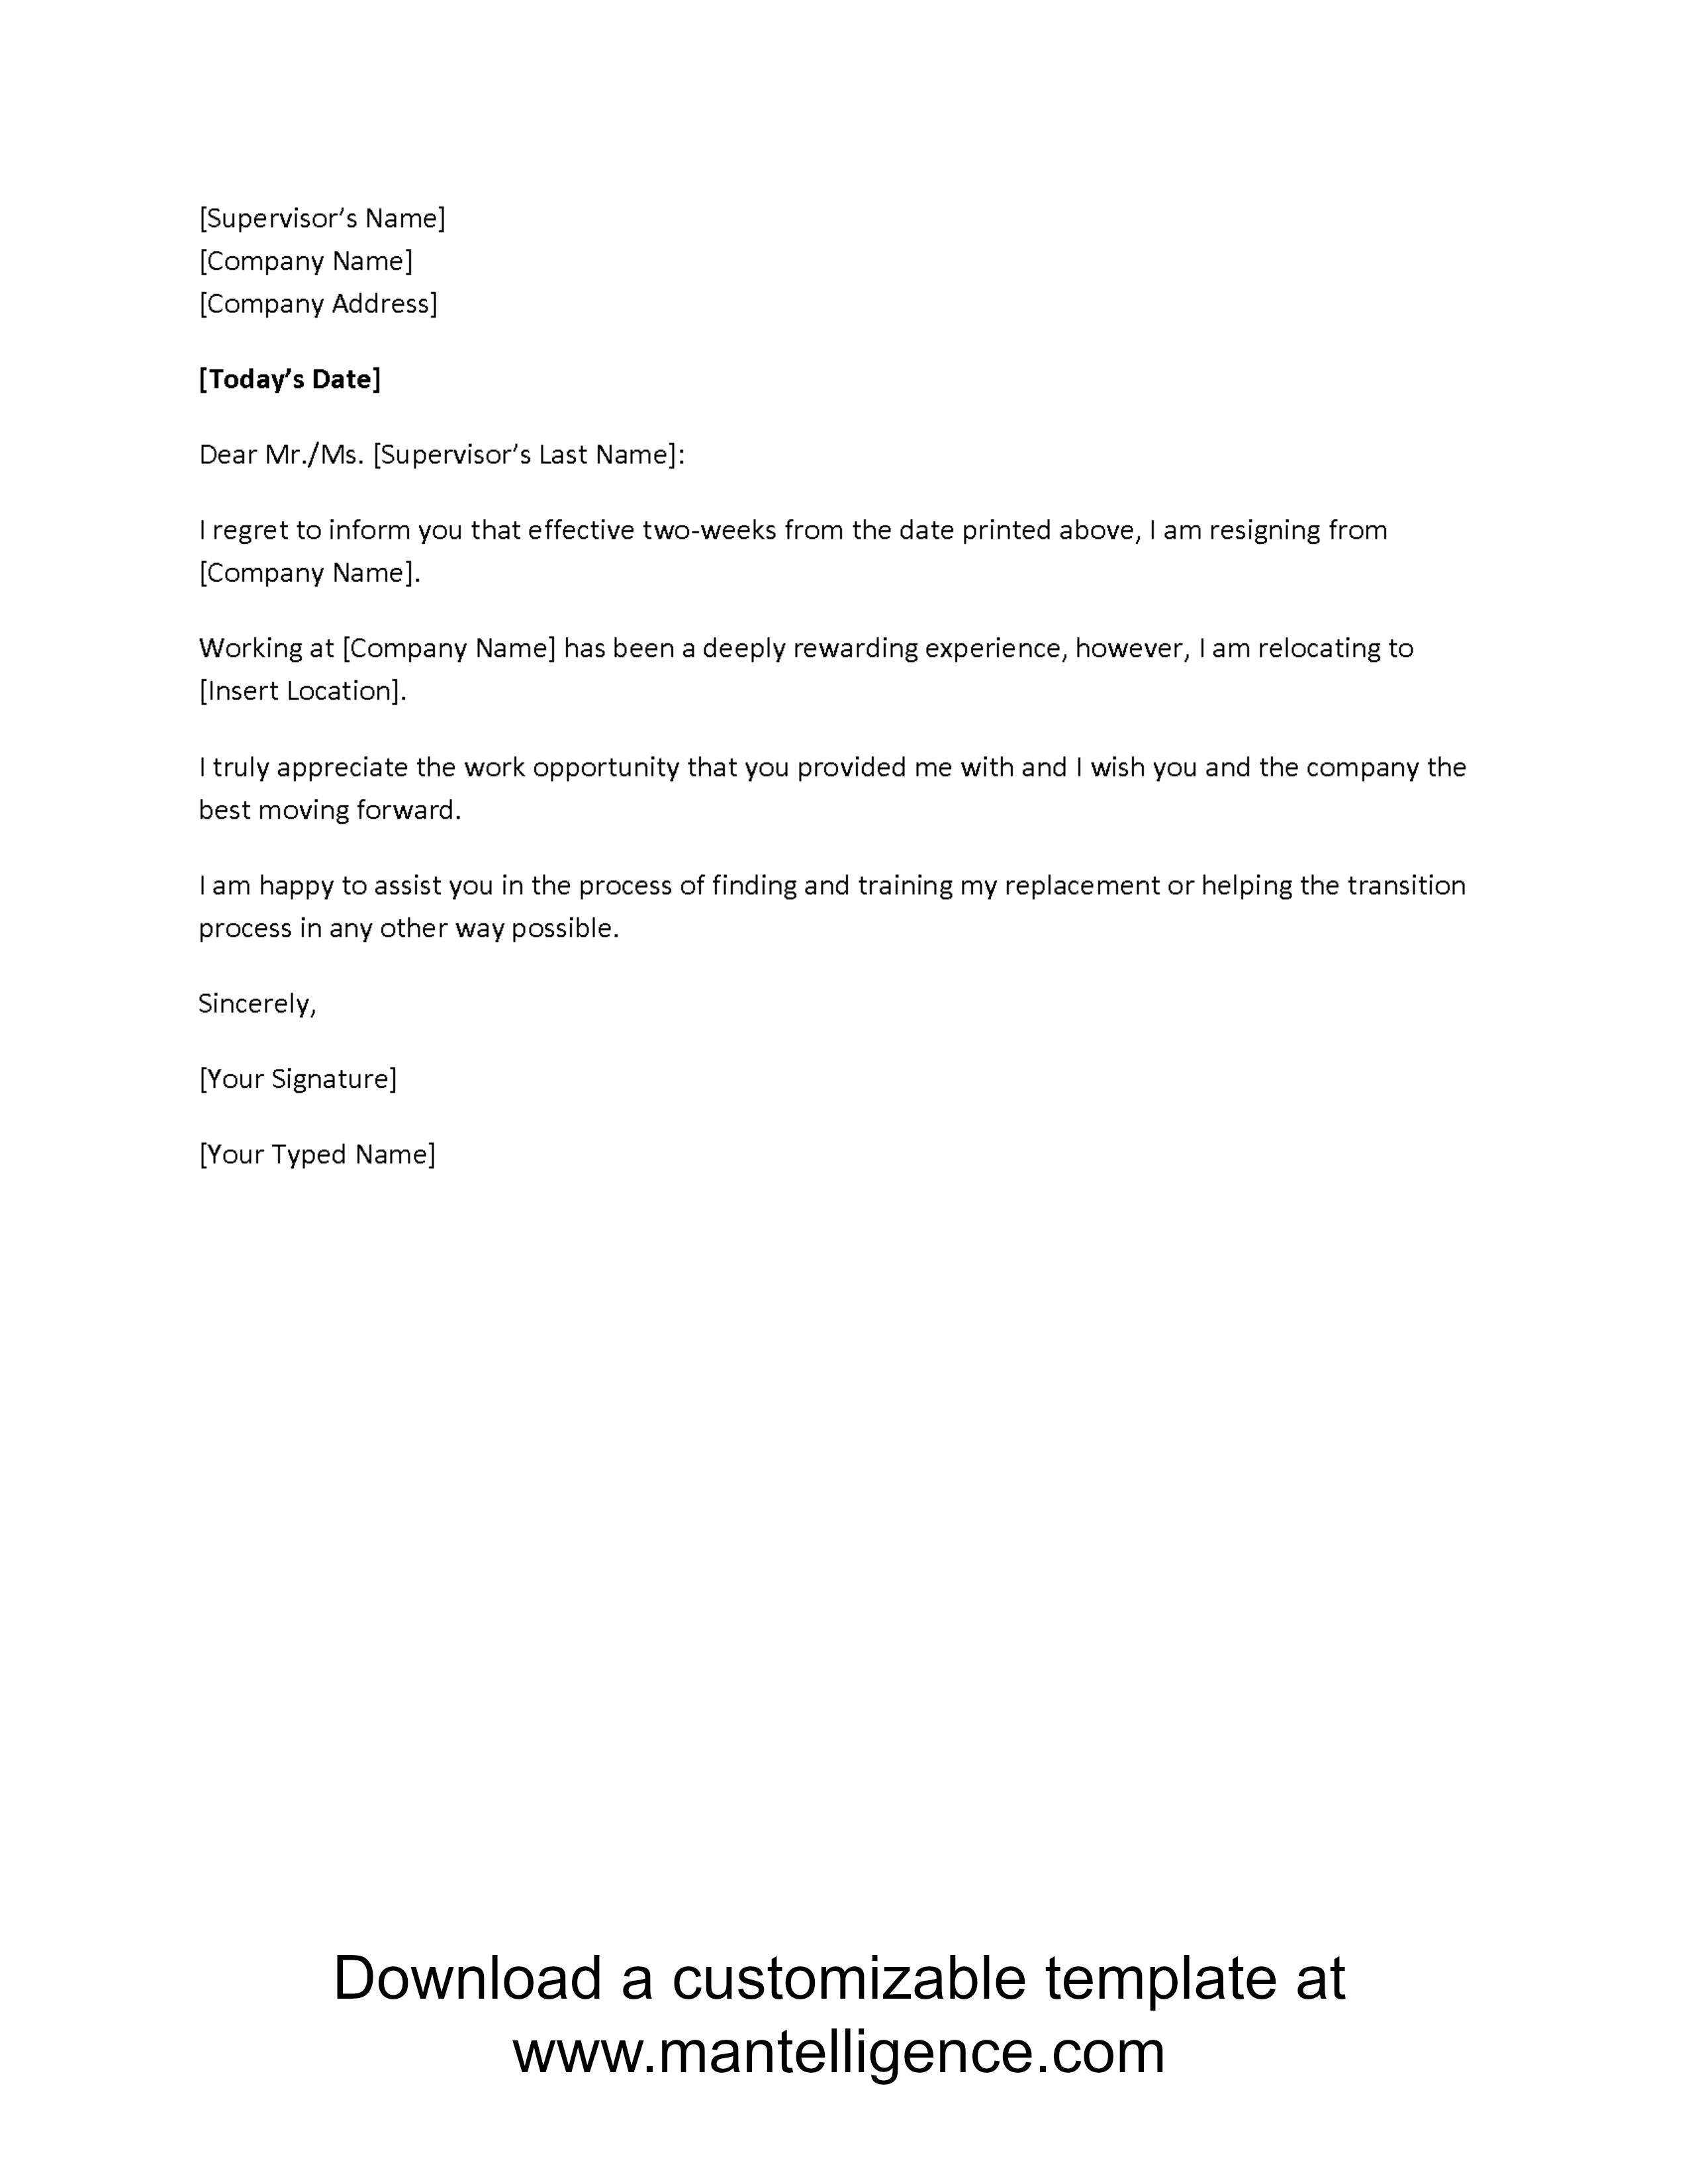 Long Term Missionary Support Letter Template - 3 Highly Professional Two Weeks Notice Letter Templates